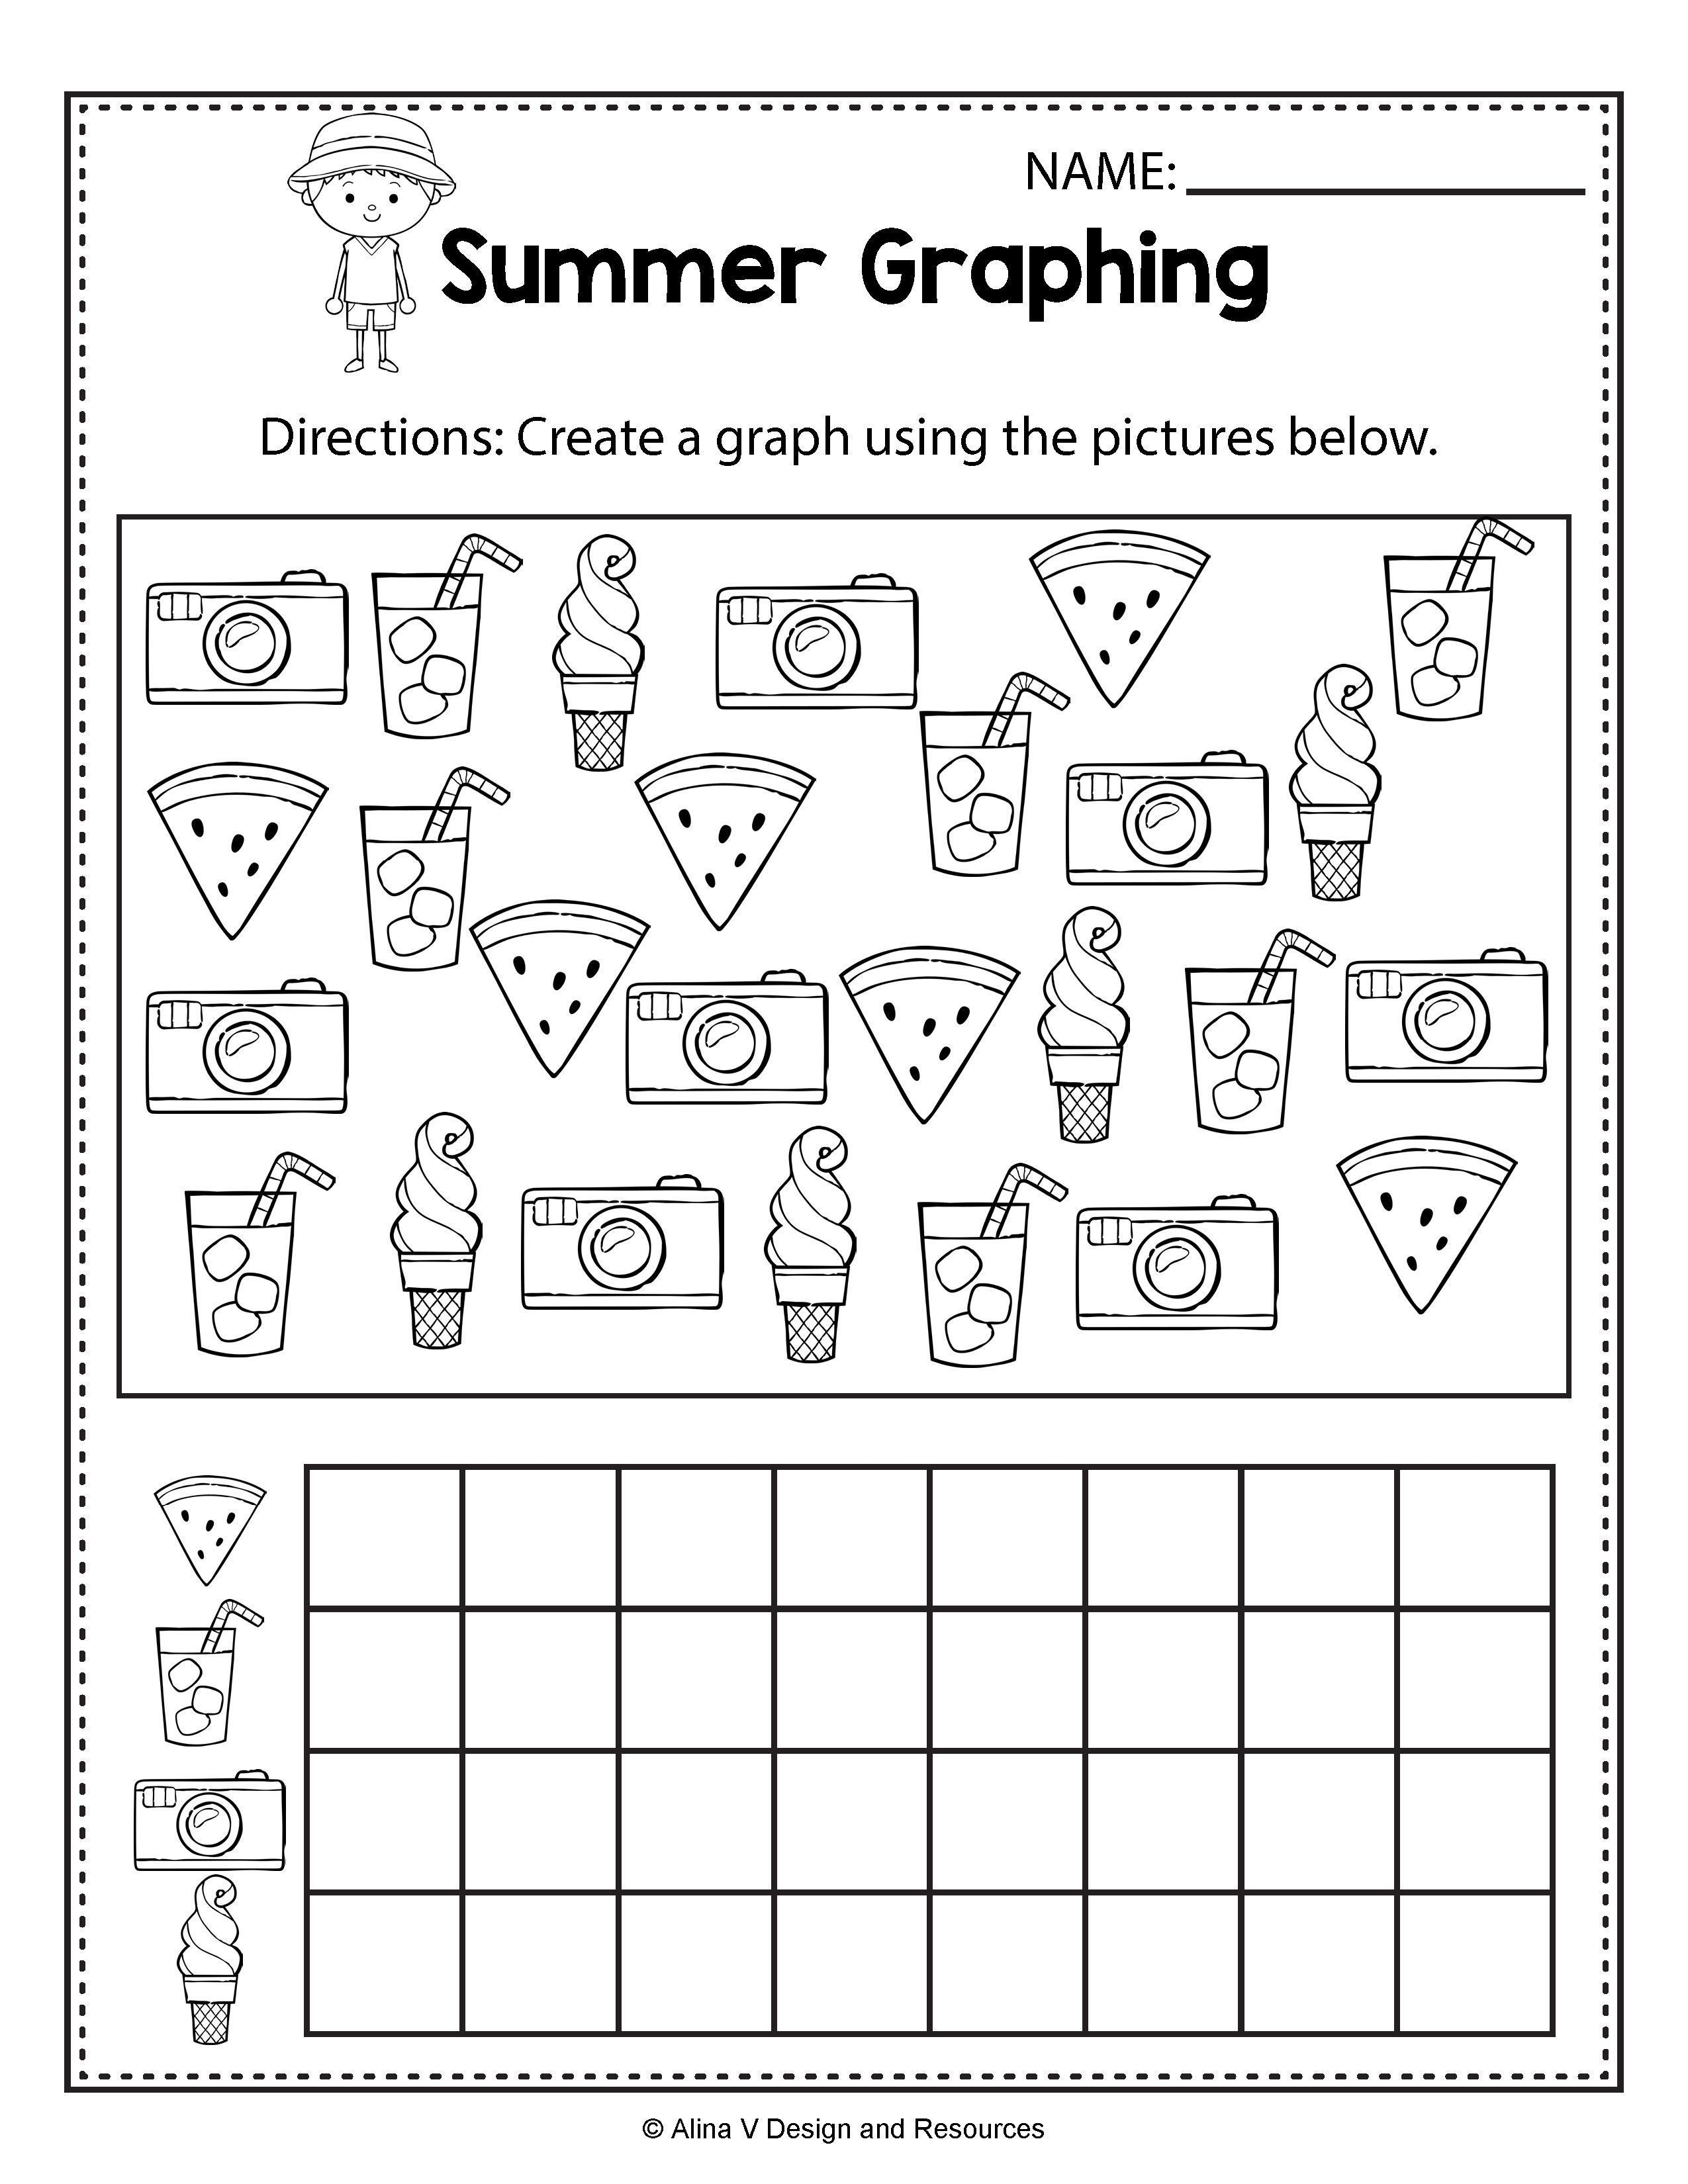 Summer Graphing